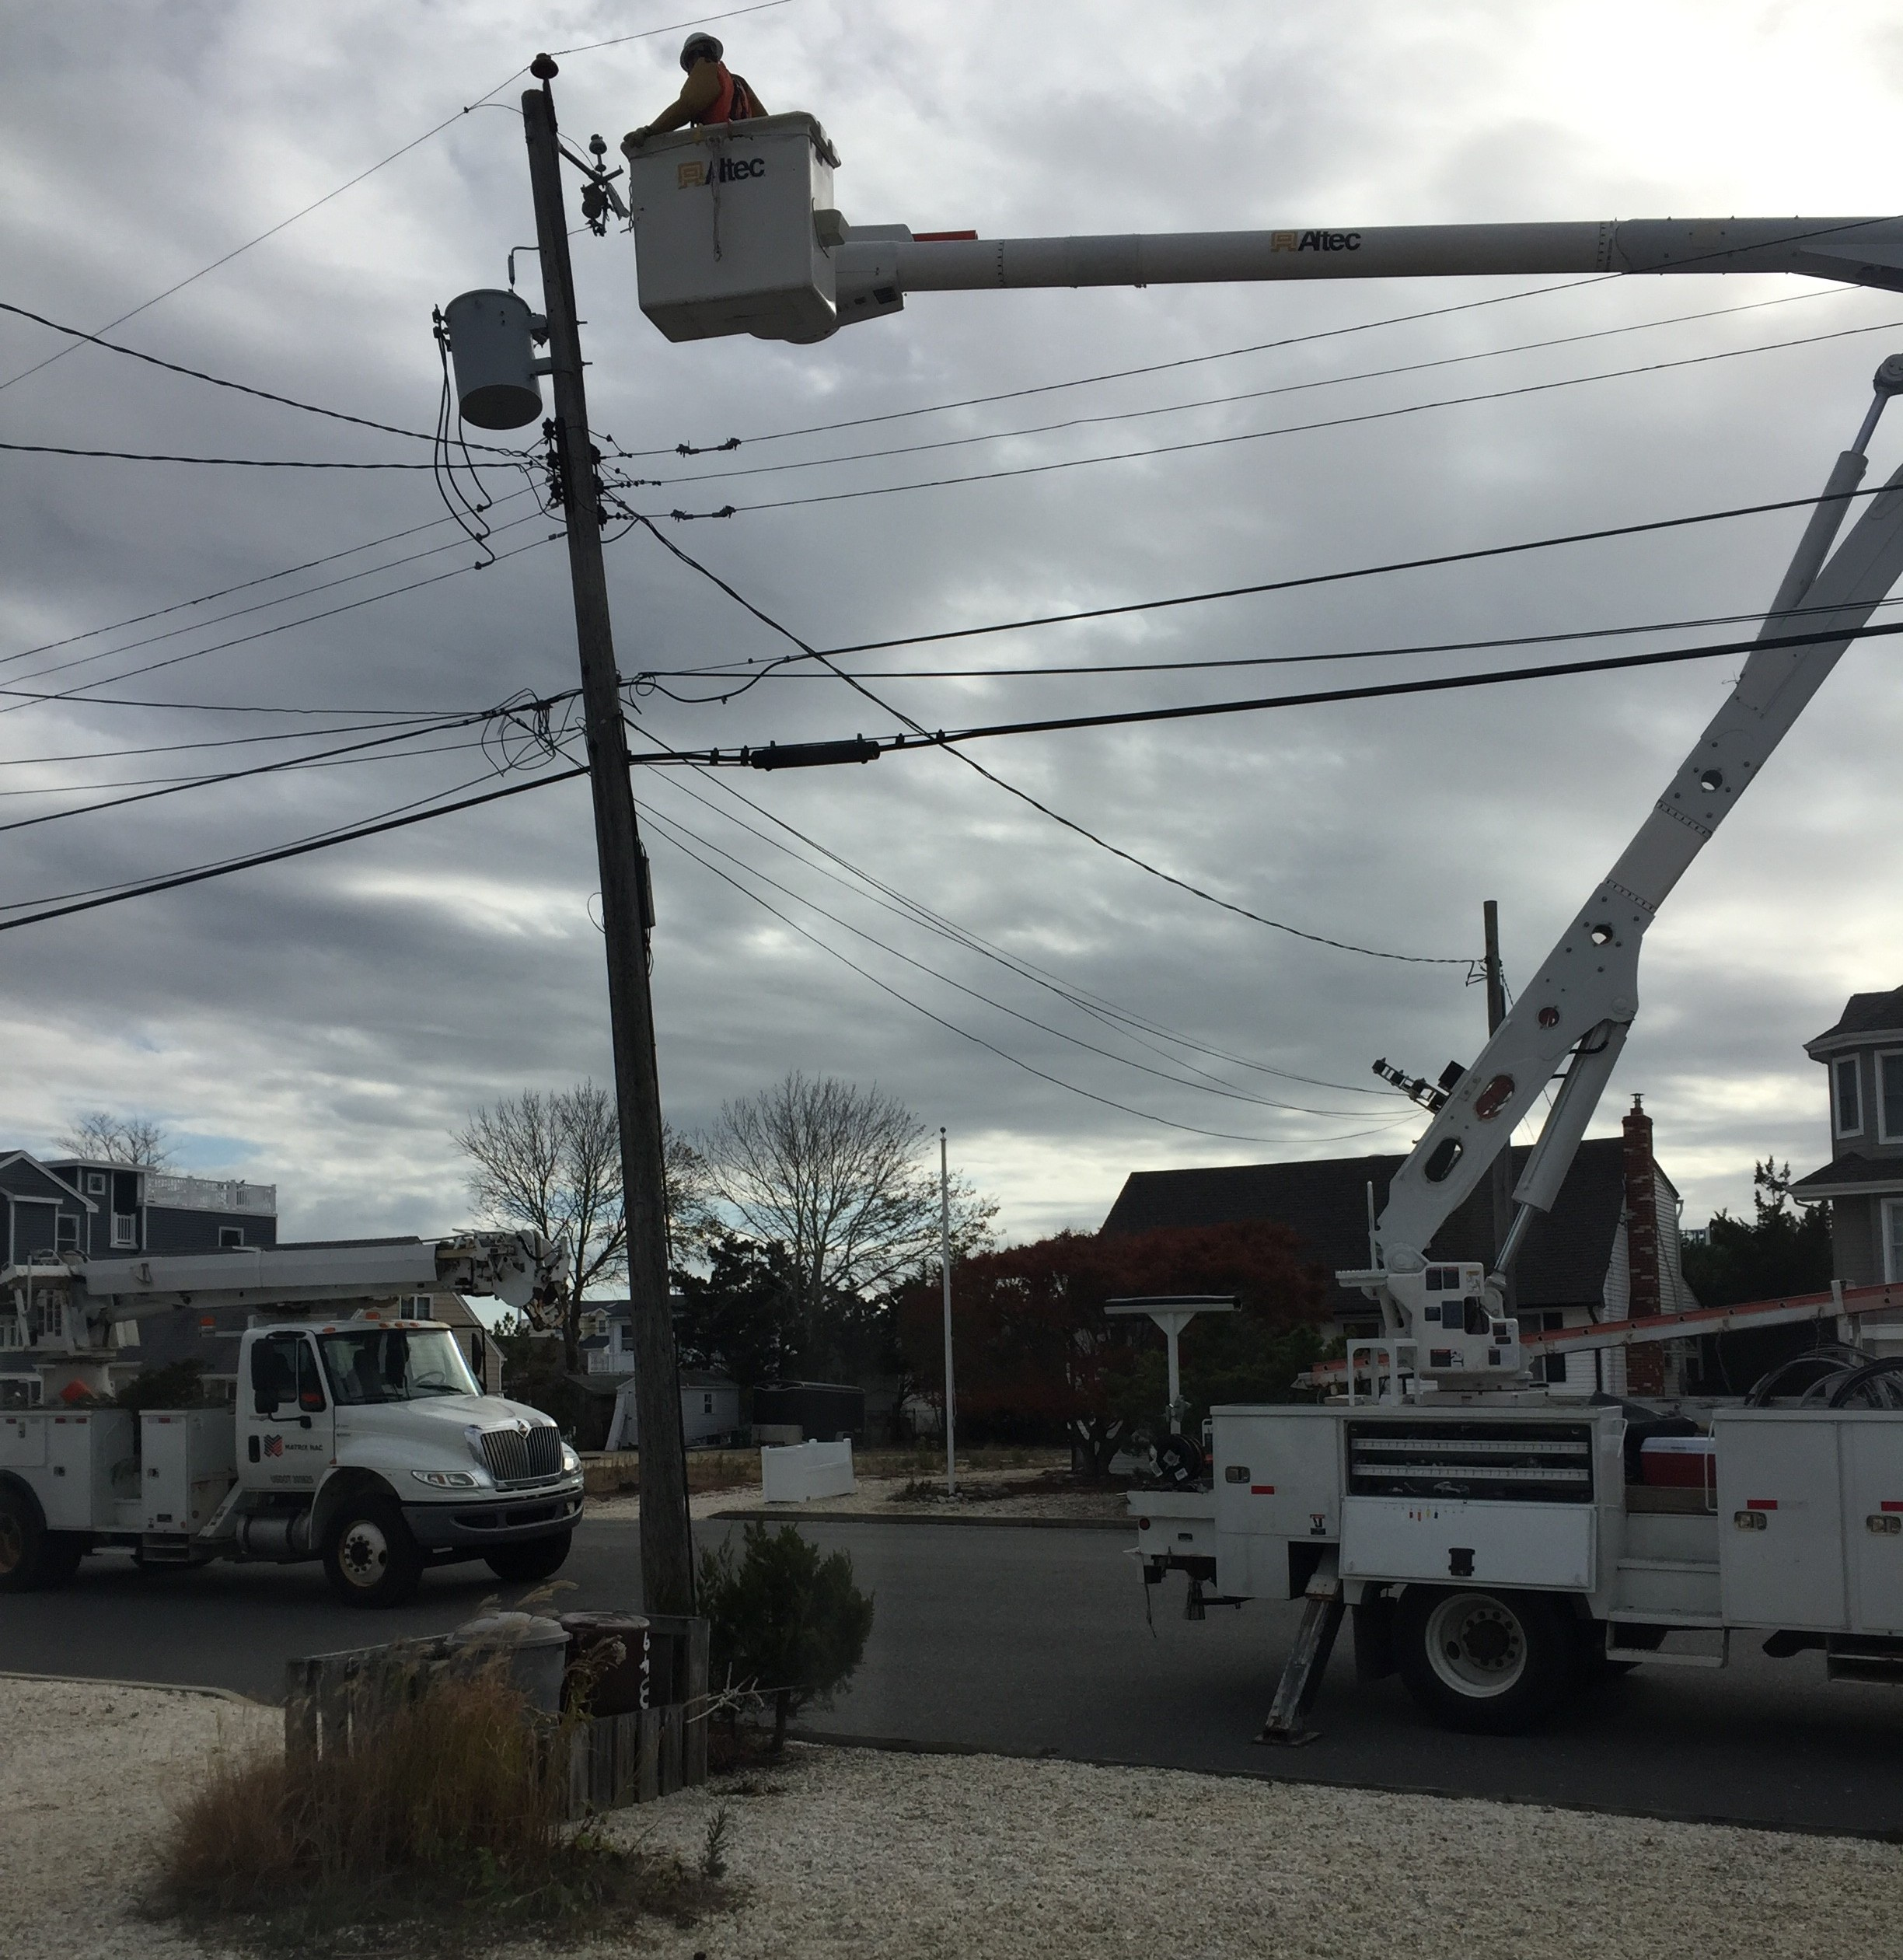 A new utility pole being installed in an Ocean County barrier island community. (Photo: Daniel Nee)